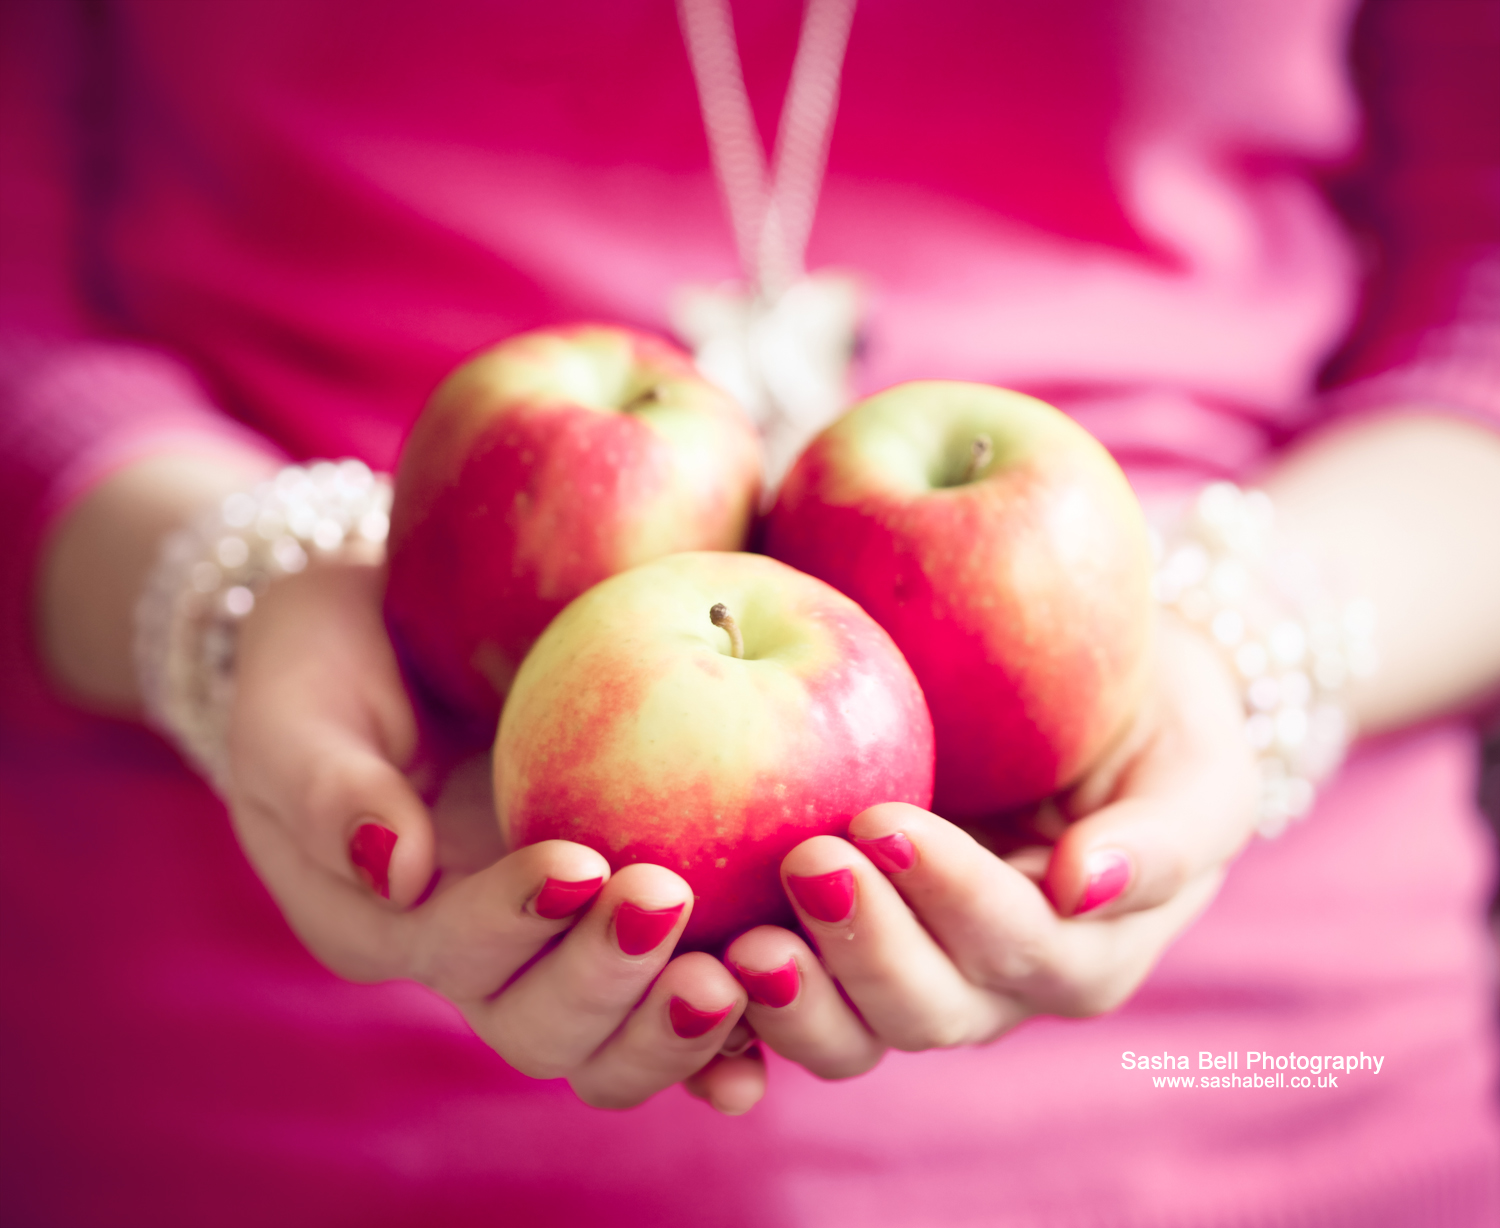 Would you like an apple? – Day 189/365